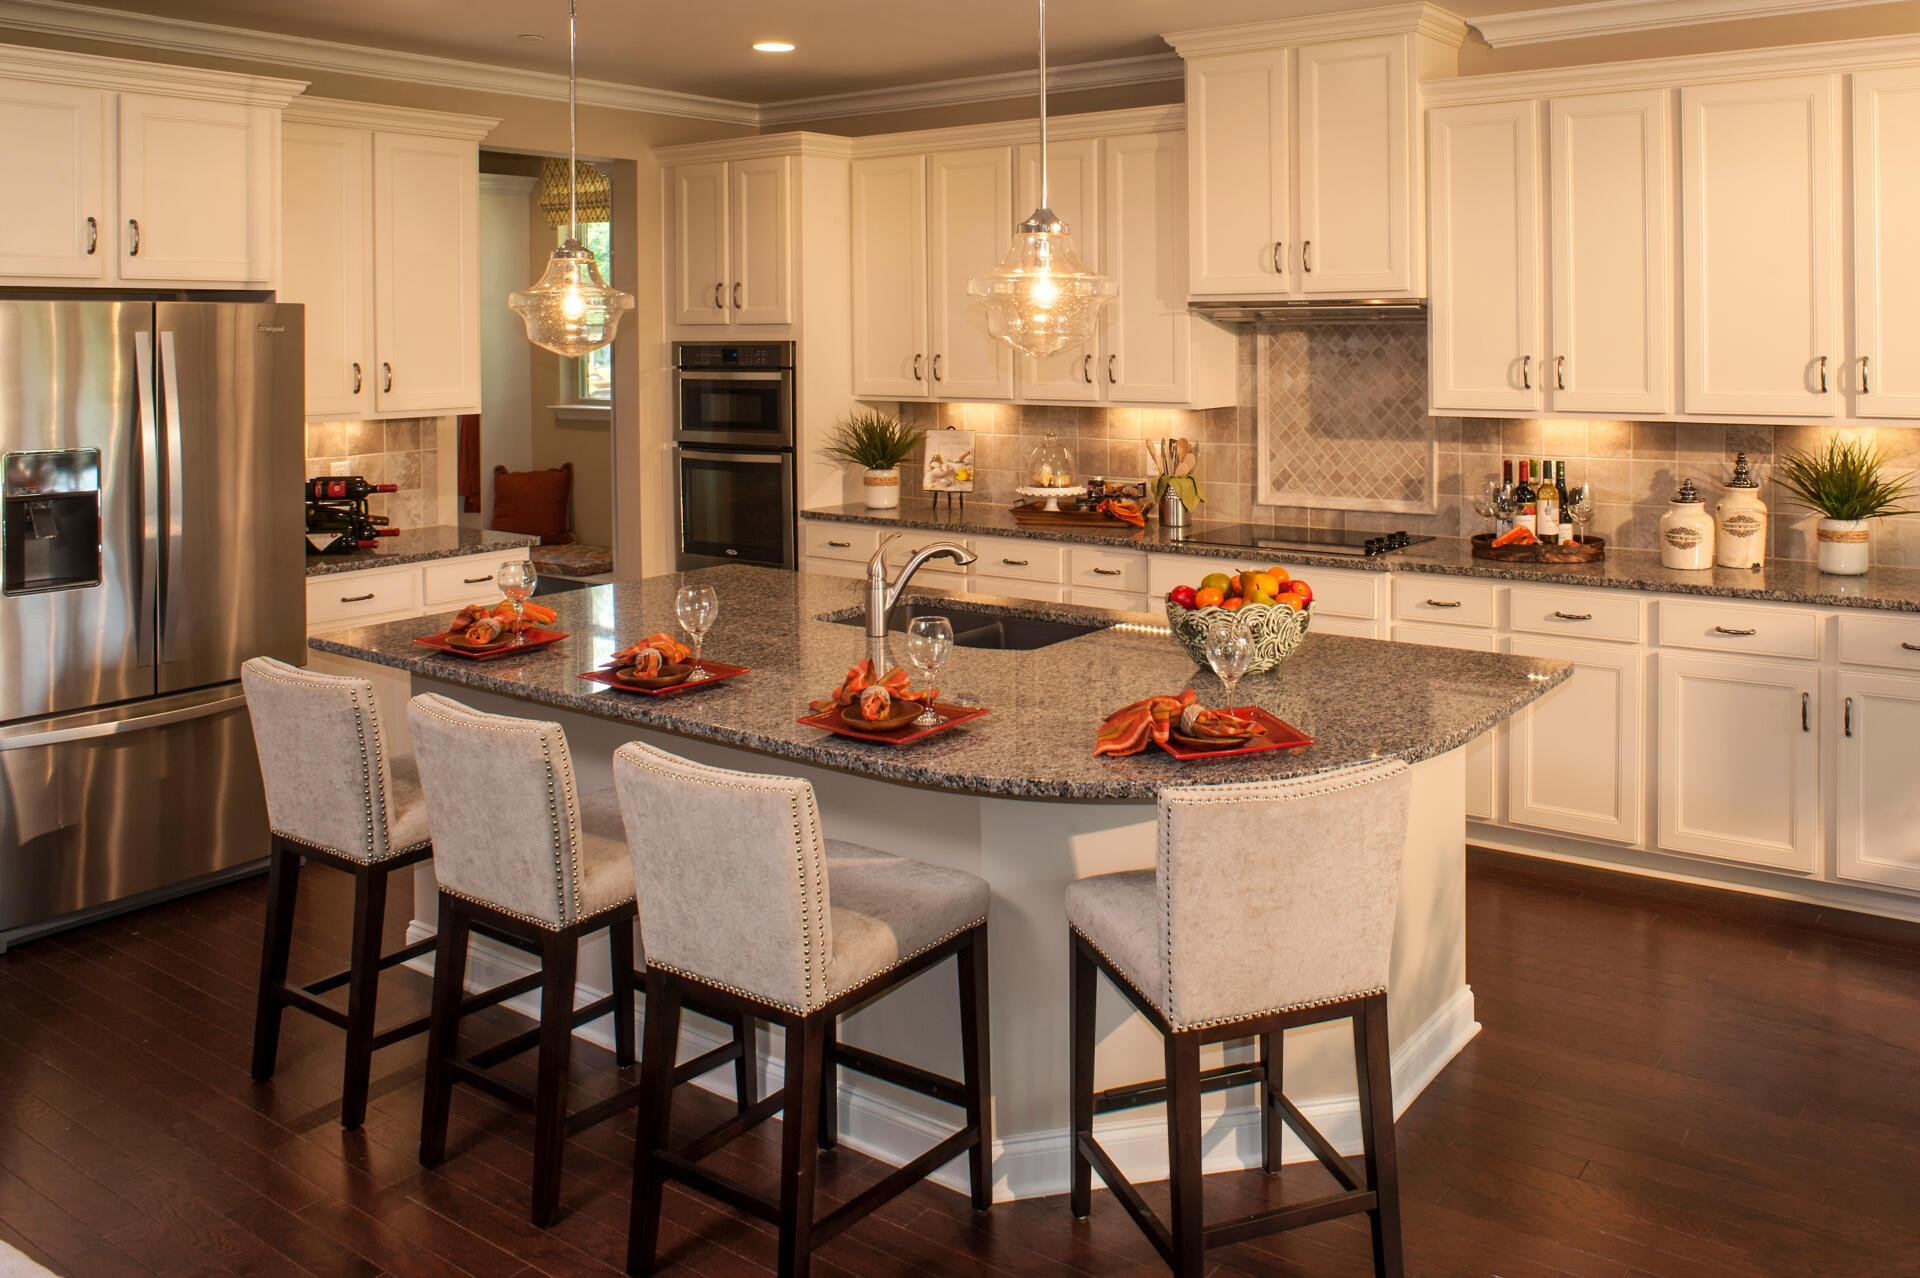 Kitchen featured in the Woodbury By Drees Homes in Nashville, TN